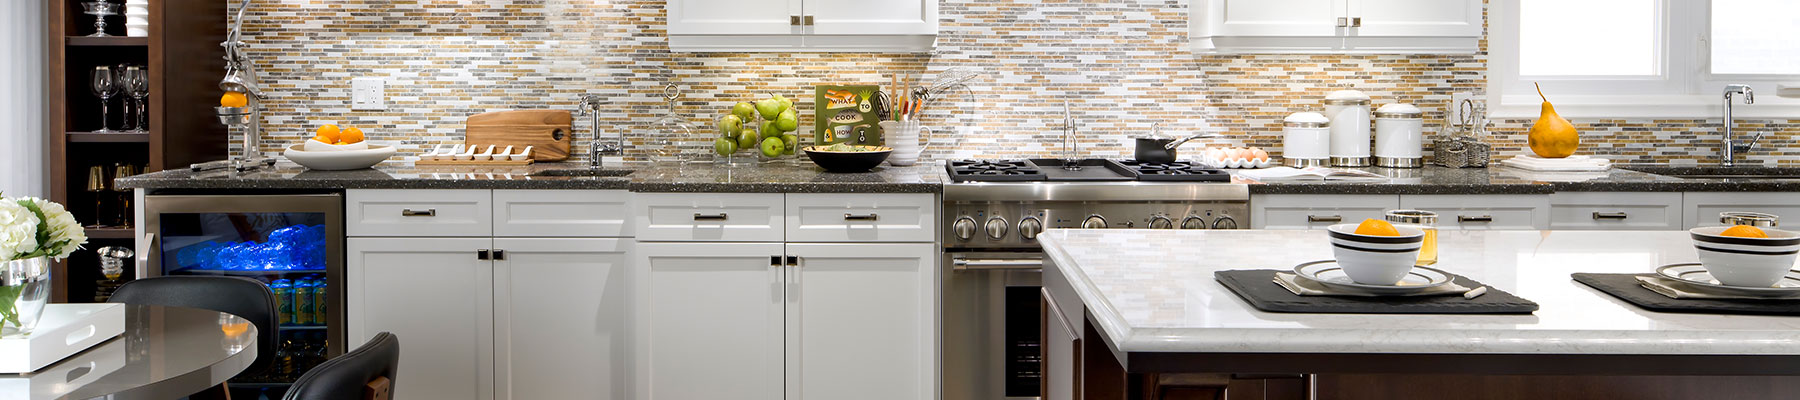 About Us - Thermador Kitchen Appliances